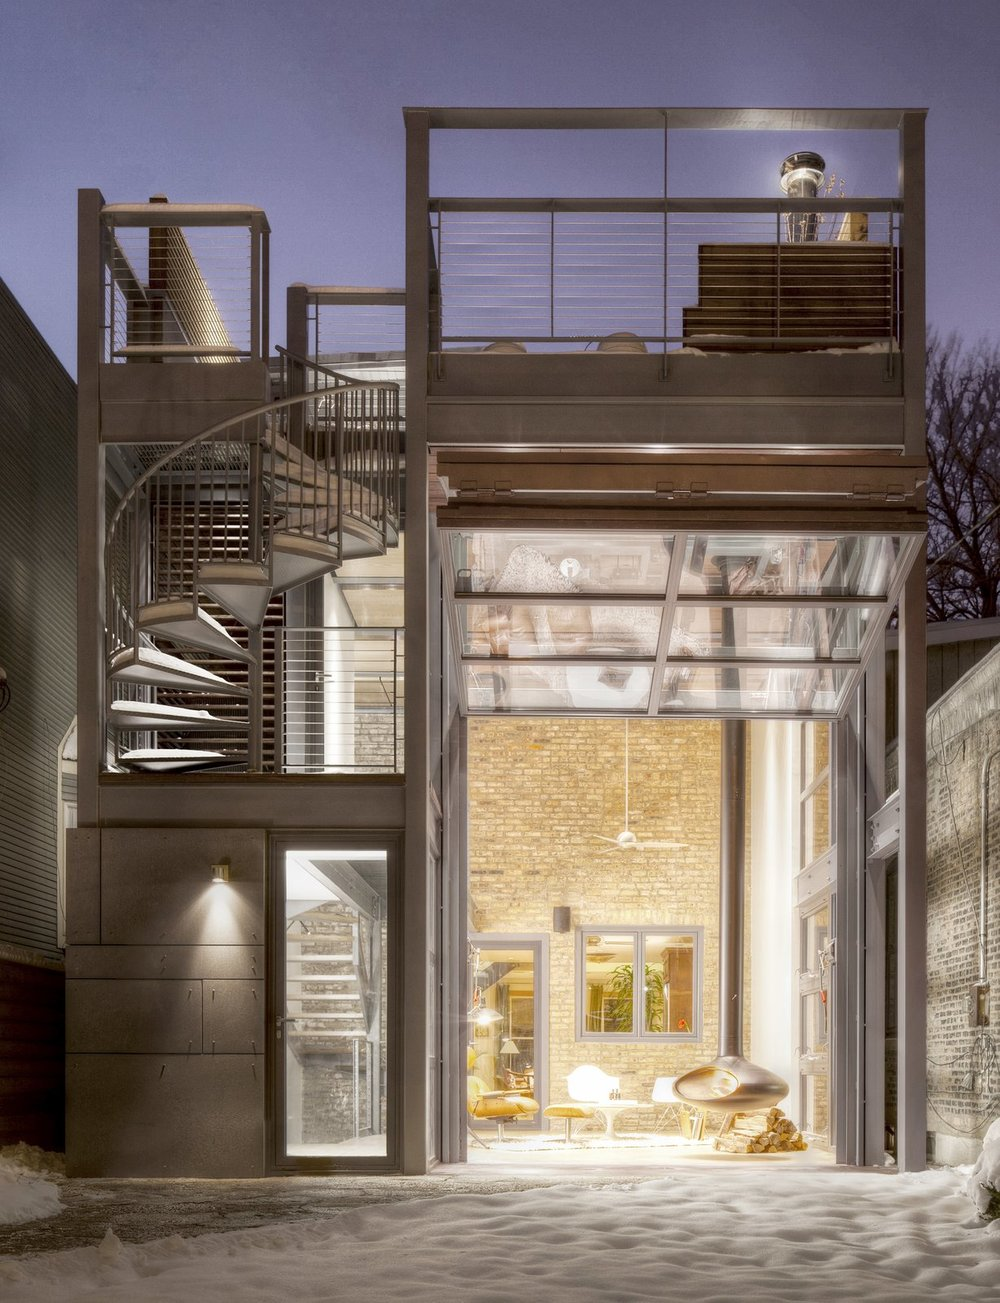 view-of-the-2-story-addition-with-the-hangar-door-open-providing-a-peak-to-the-historic-brick-wall-of-the-original-house-beyond.jpg